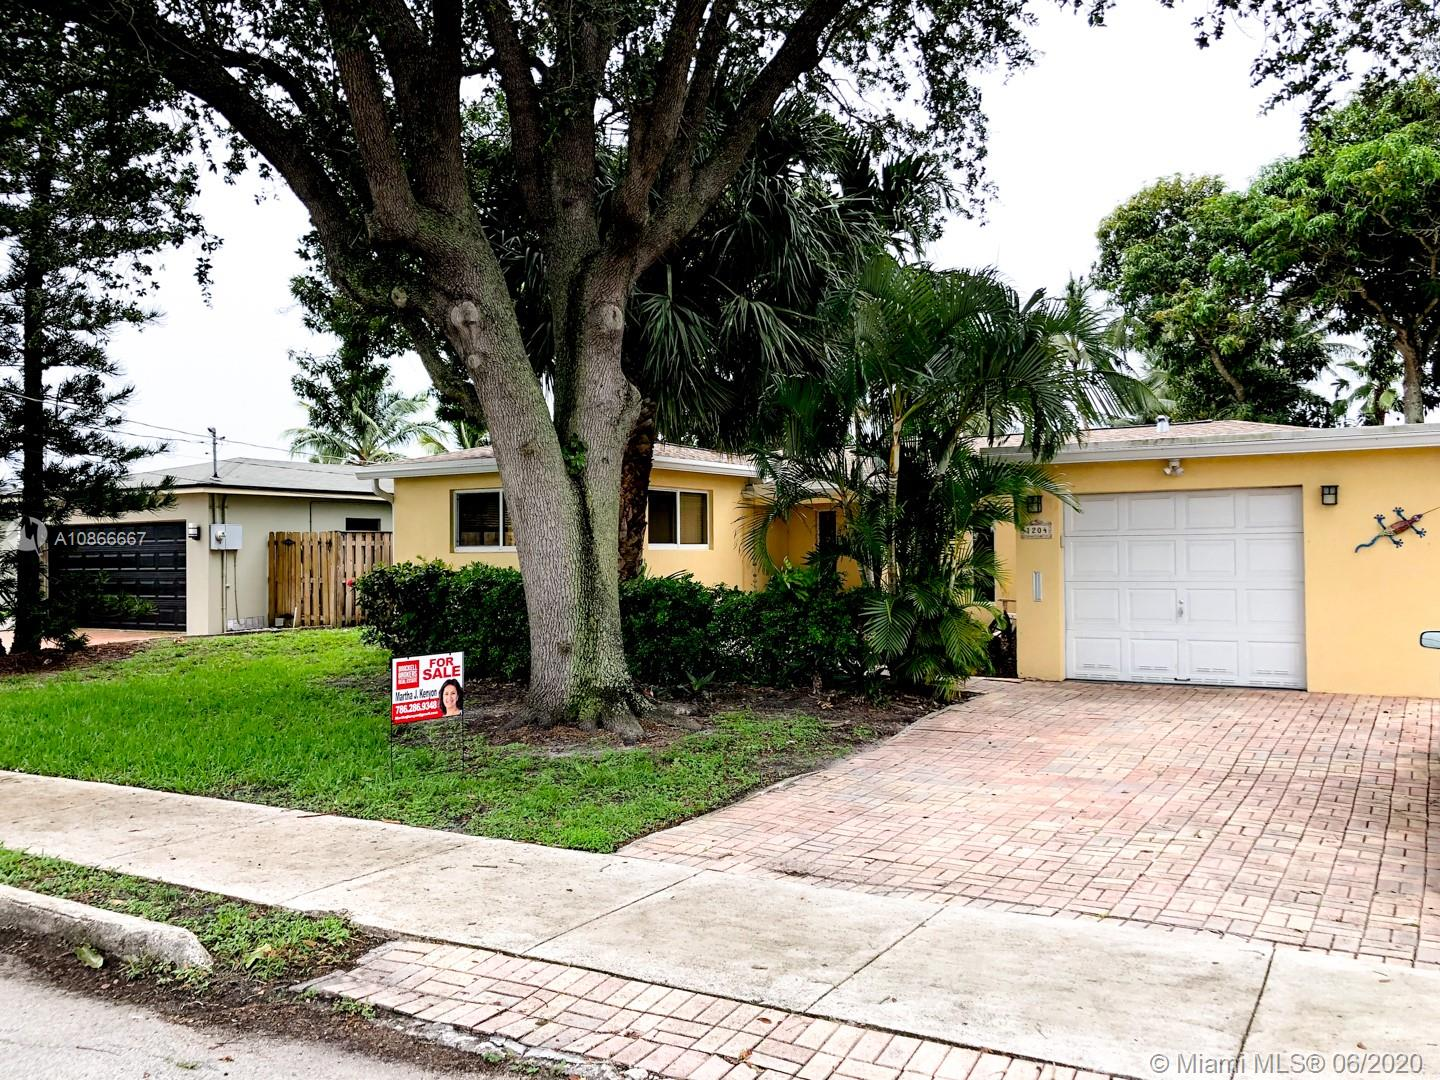 BEAUTIFUL, SPACIOUS 1830 s.f  2-2  1/2, 65ft WATERFRONT HOME LOCATED IN THE CITRUS ISLES. This home faces one of the deepest canals with ocean access and no fixed bridges. The roof is under 5 years old with a 20 YEAR warranty. HOUSE HAS IMPACT WINDOWS & DOORS. Open floor plan. Original terrazzo floors in the bedrooms. Newly installed, natural gas on-demand WATER HEATER. Dock and deck are in great shape. The dock has water and 50 amp. service.  The kitchen appliances are only 3 years old. A new electric panel was installed by the current owner. This home is in a Great location close to 95, Las Olas the beach, and the airport.  Enjoy the beautiful relaxing water view and the 2 Mango trees in the back yard.  Please wear a mask for the visit!